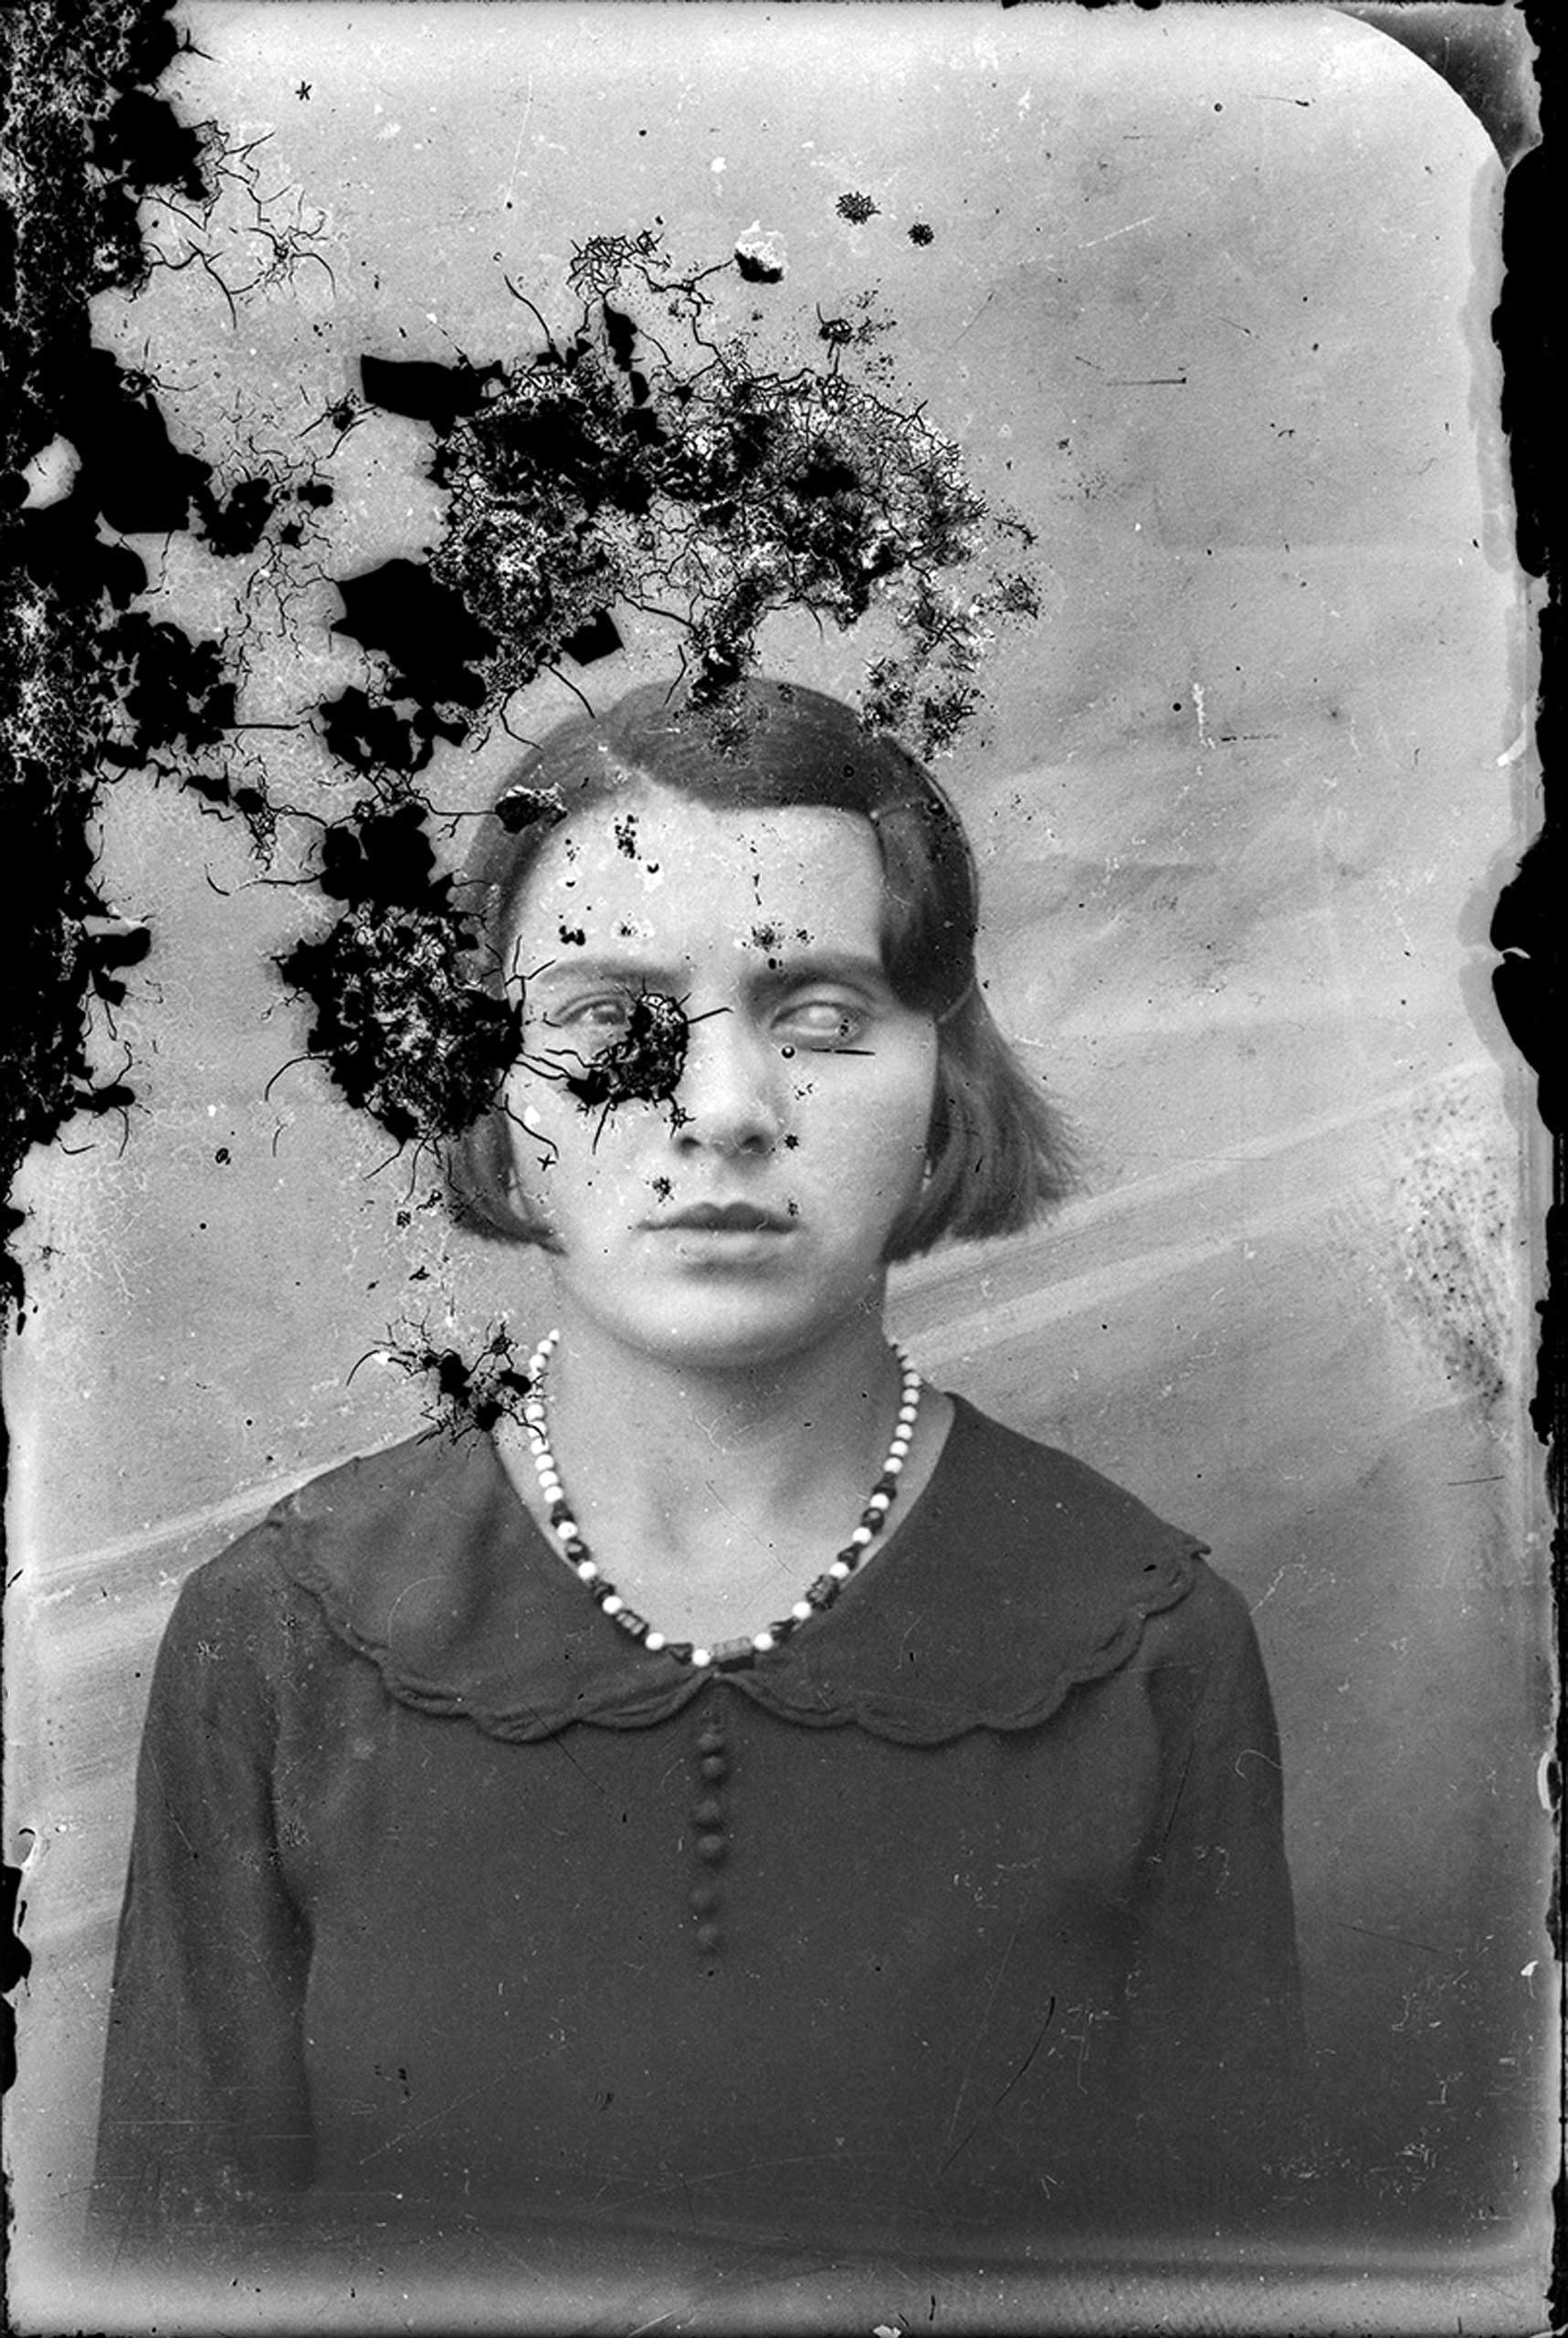 The following portraits from the photographer's 5000 glass plate archive are yet undated. At the time of this writing, over 1000 have been digitized and uploaded to Flickr.ca_20140105_018